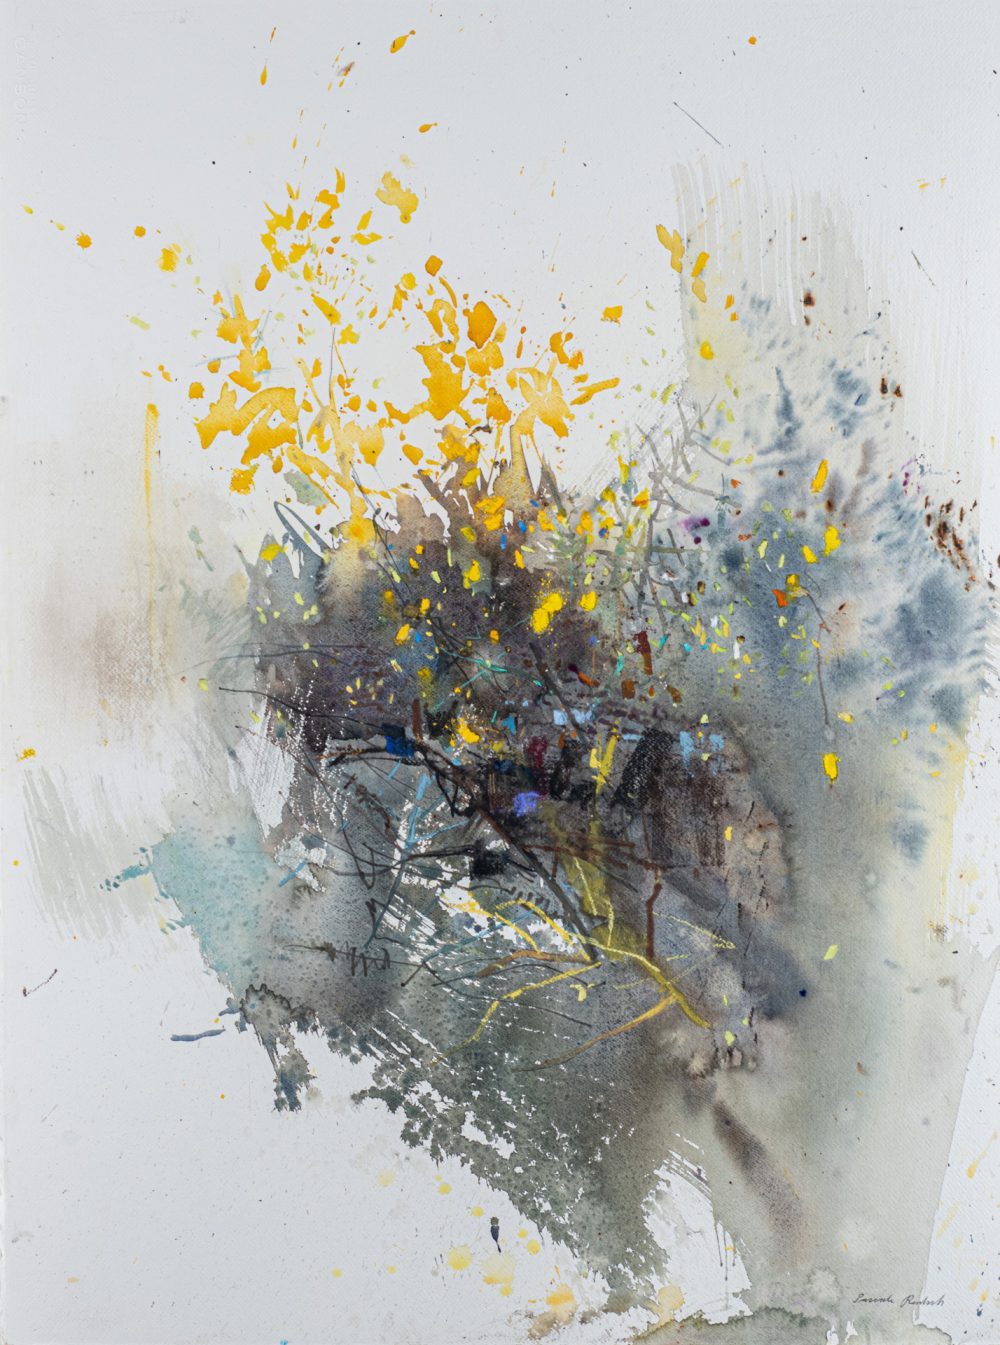 Glowing Yellow Gorse by Pascale Rentsch, Mixed media